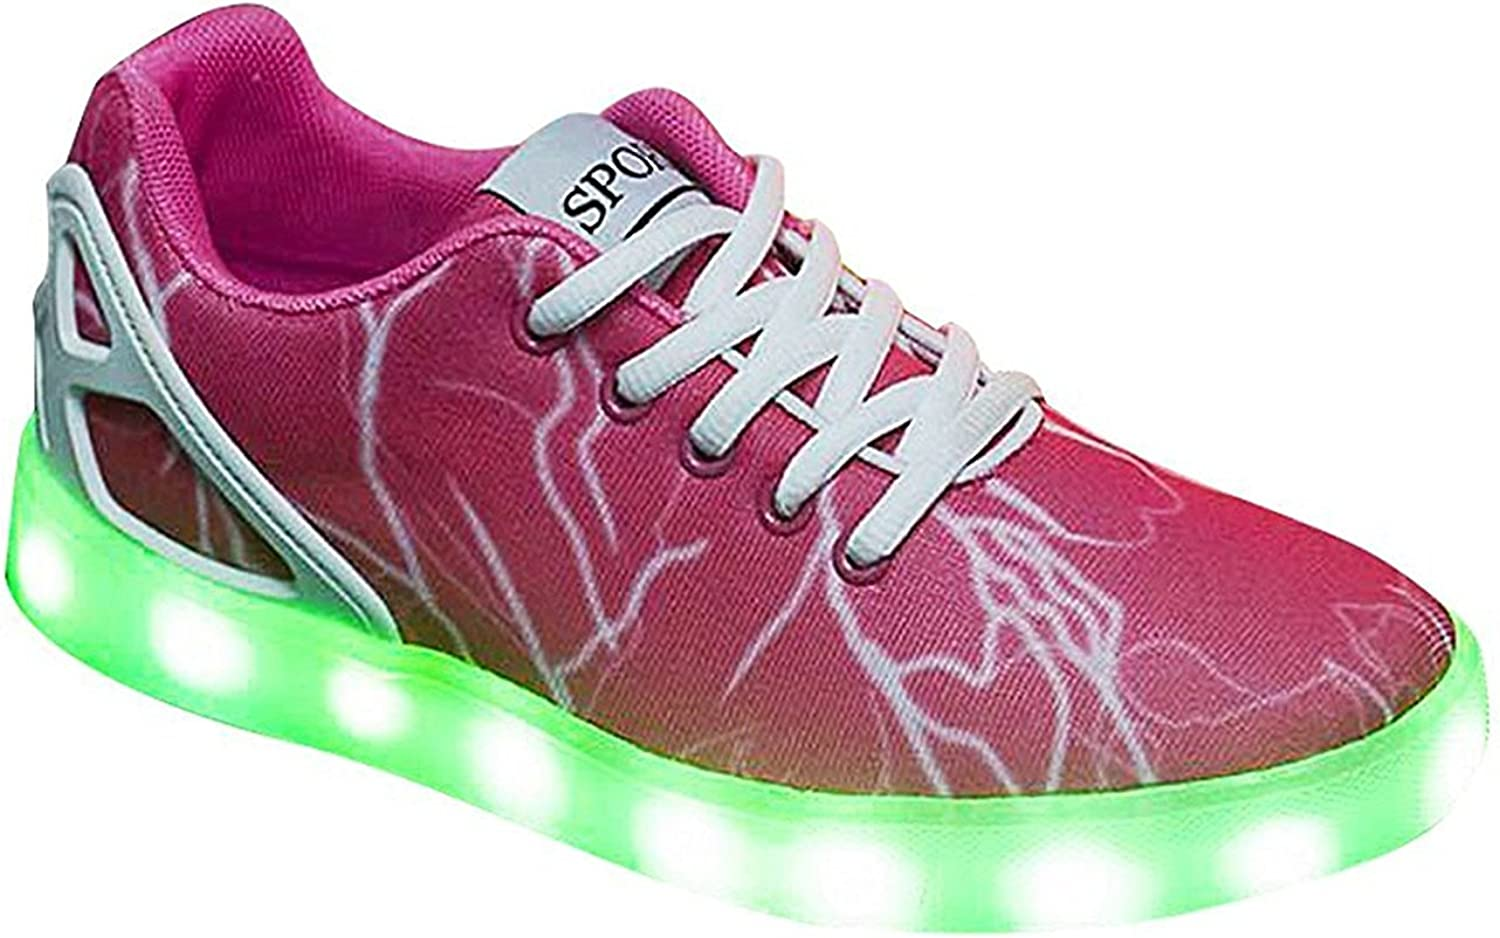 Sexphd Unisex USB Charging Light Up LED shoes Flashing Sneakers